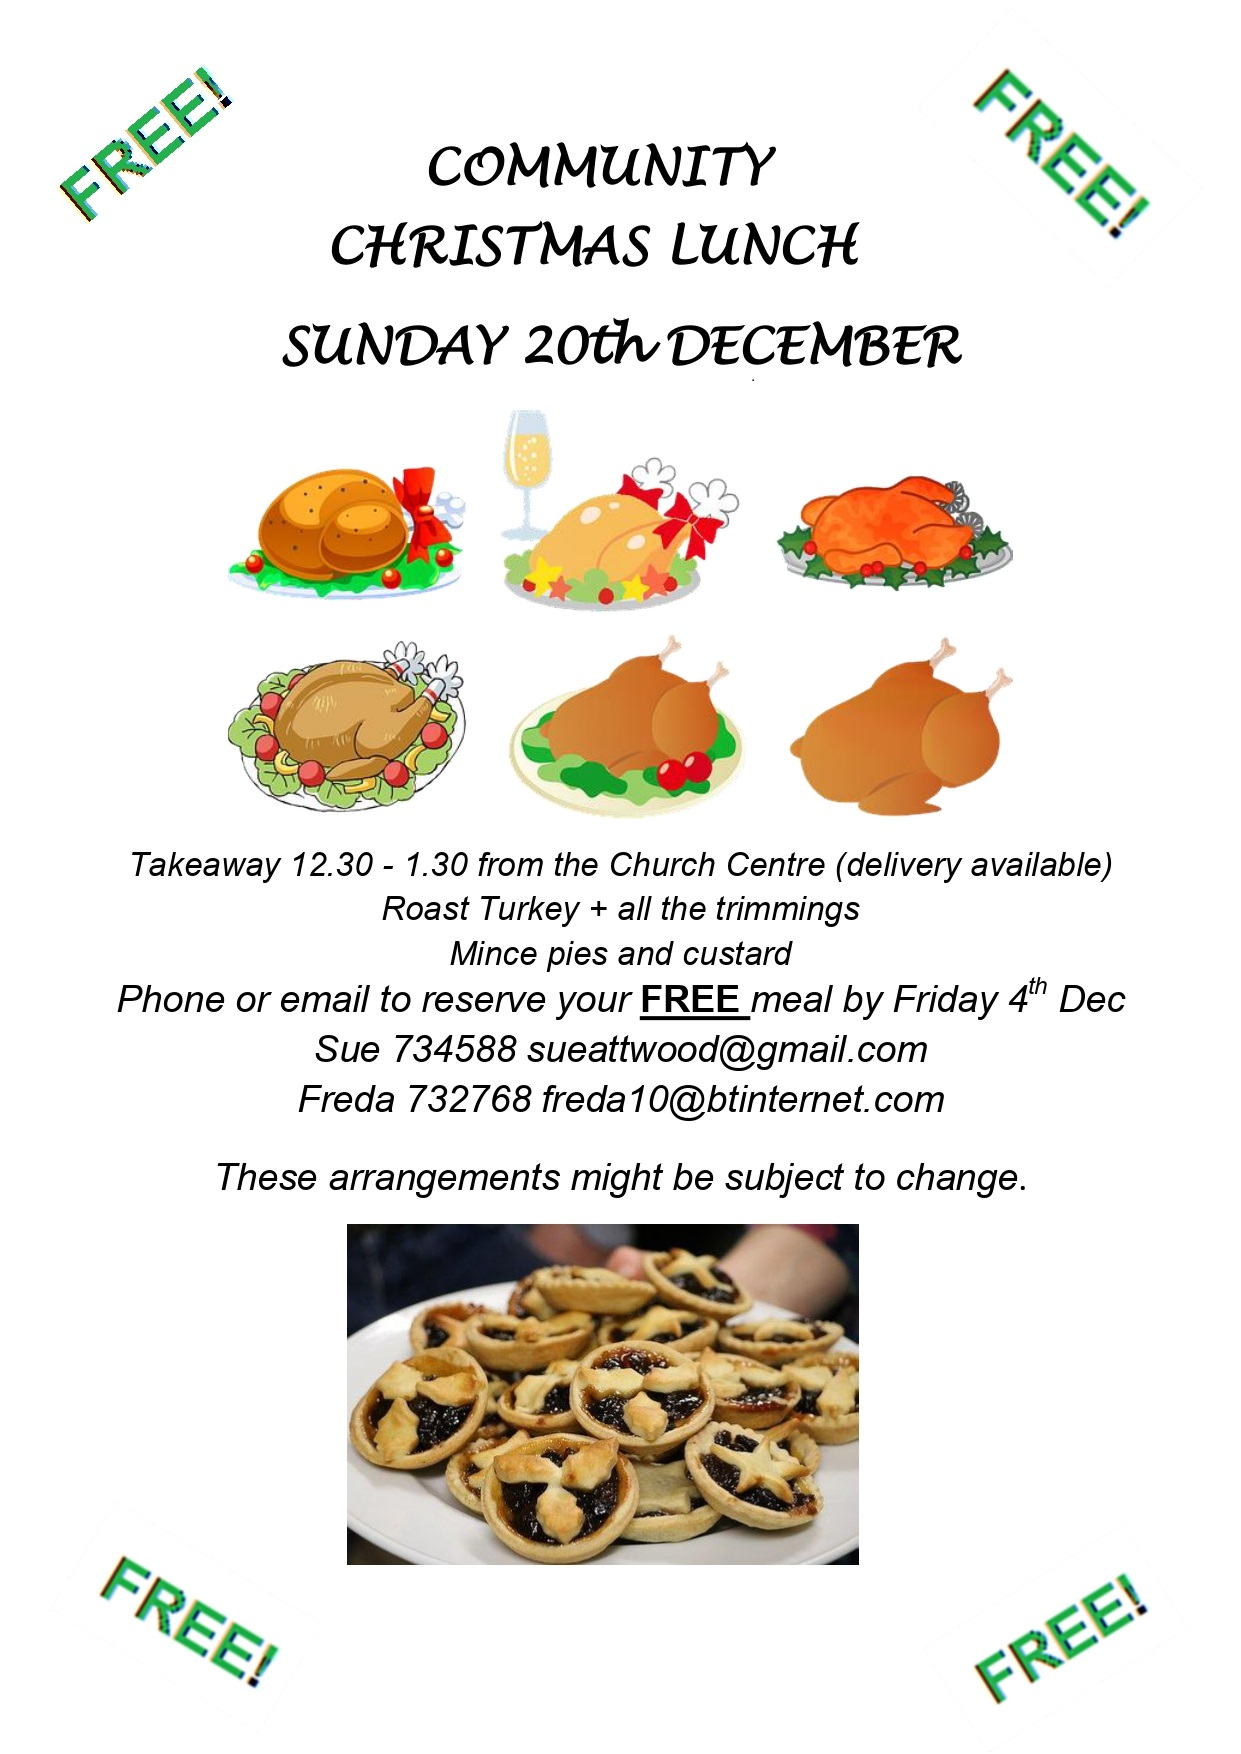 Community Christmas Lunch @ Church Centre